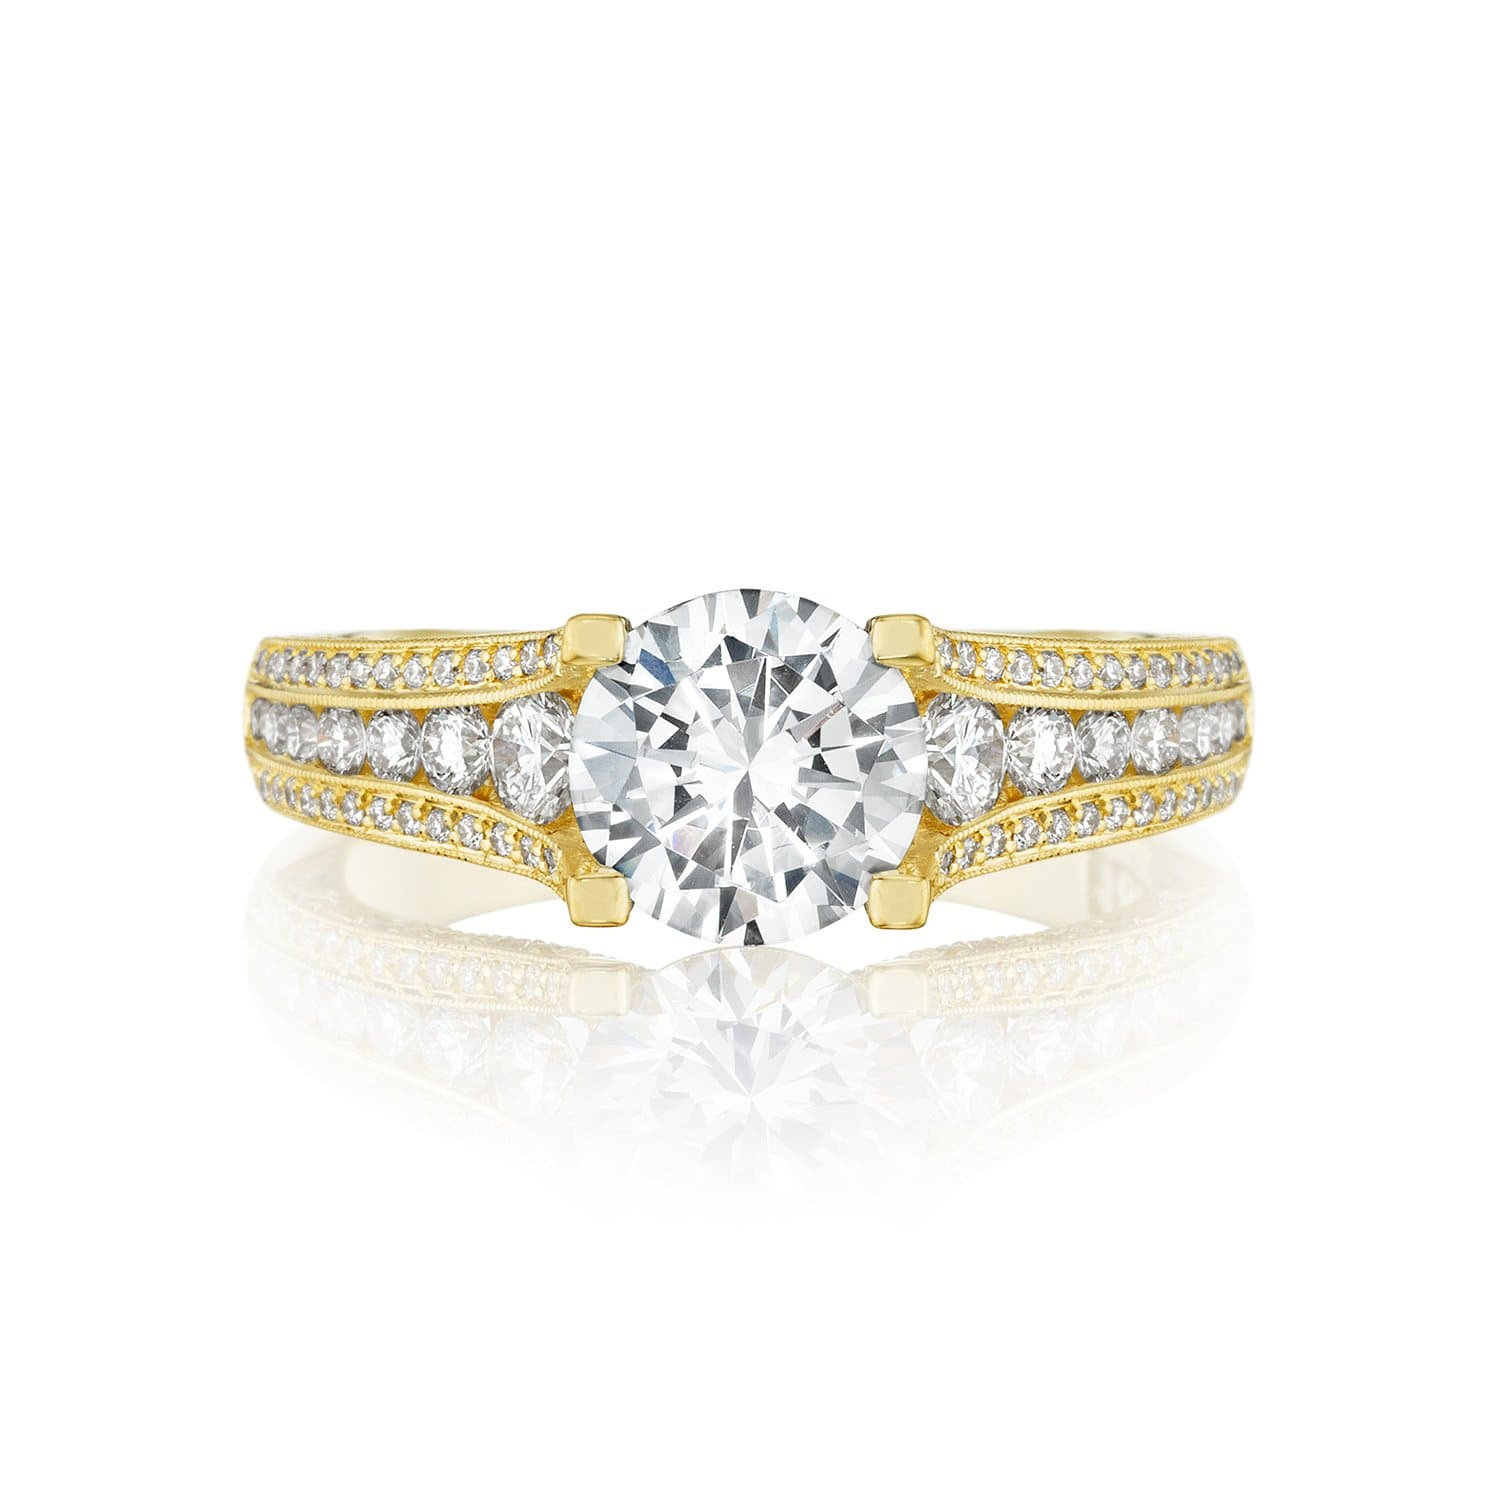 18 Karat Yellow Gold Tacori Contemporary Semi-Mount Diamond Ring (Setting Only)